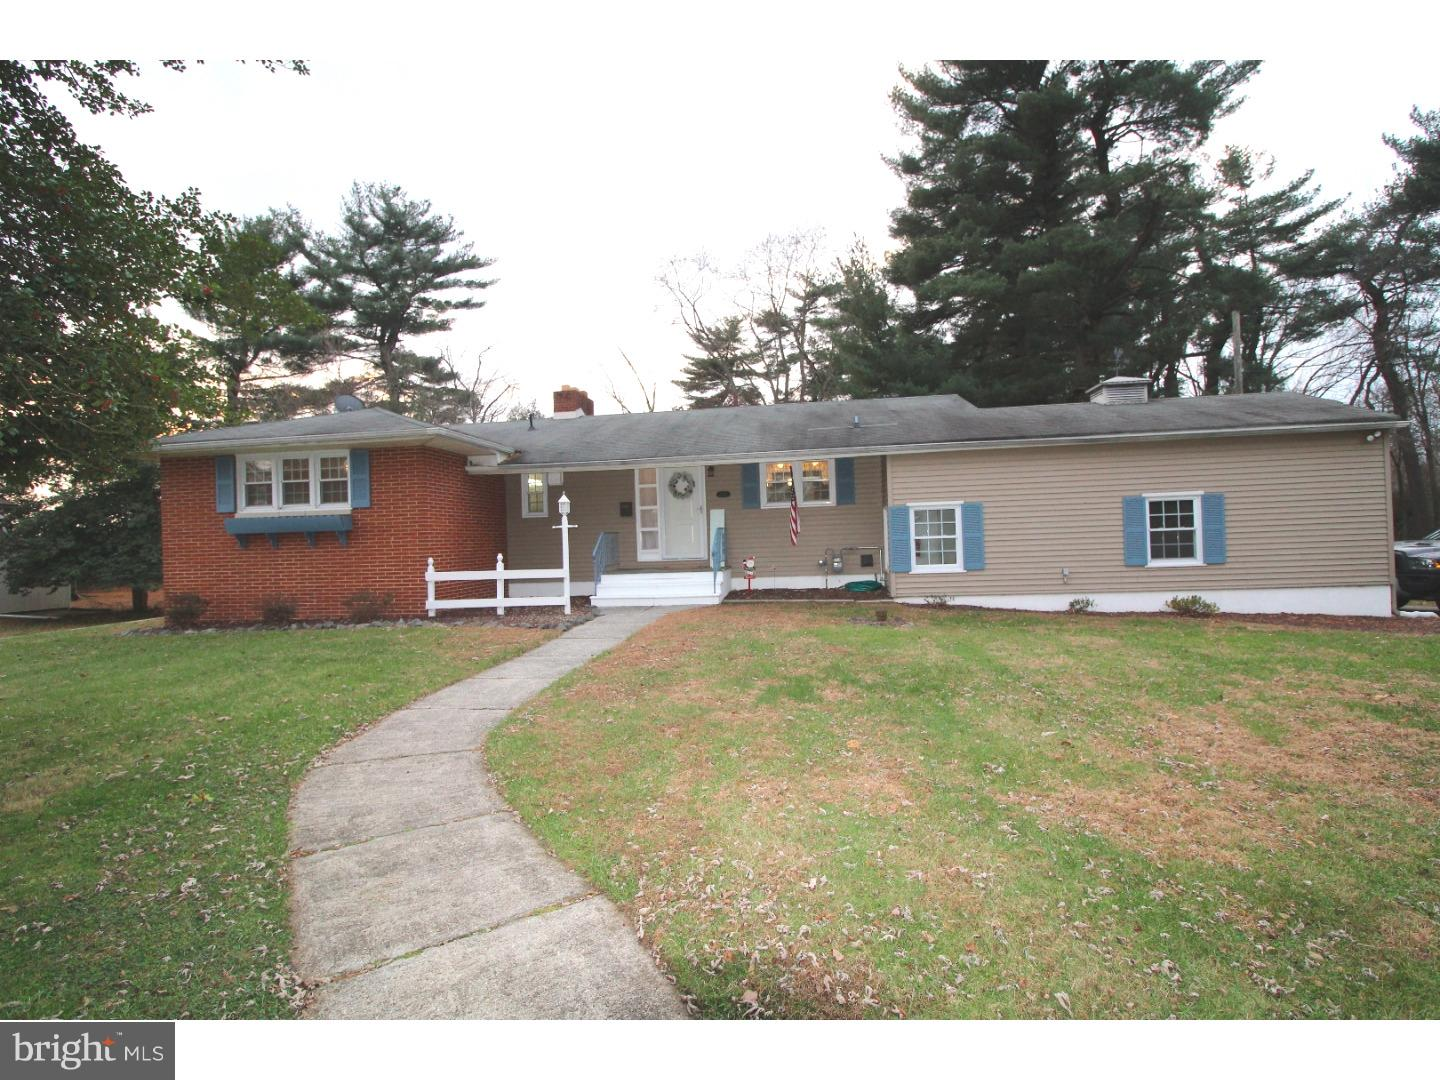 Single Family Home for Sale at 157 BACCHUS Avenue Gibbstown, New Jersey 08027 United States